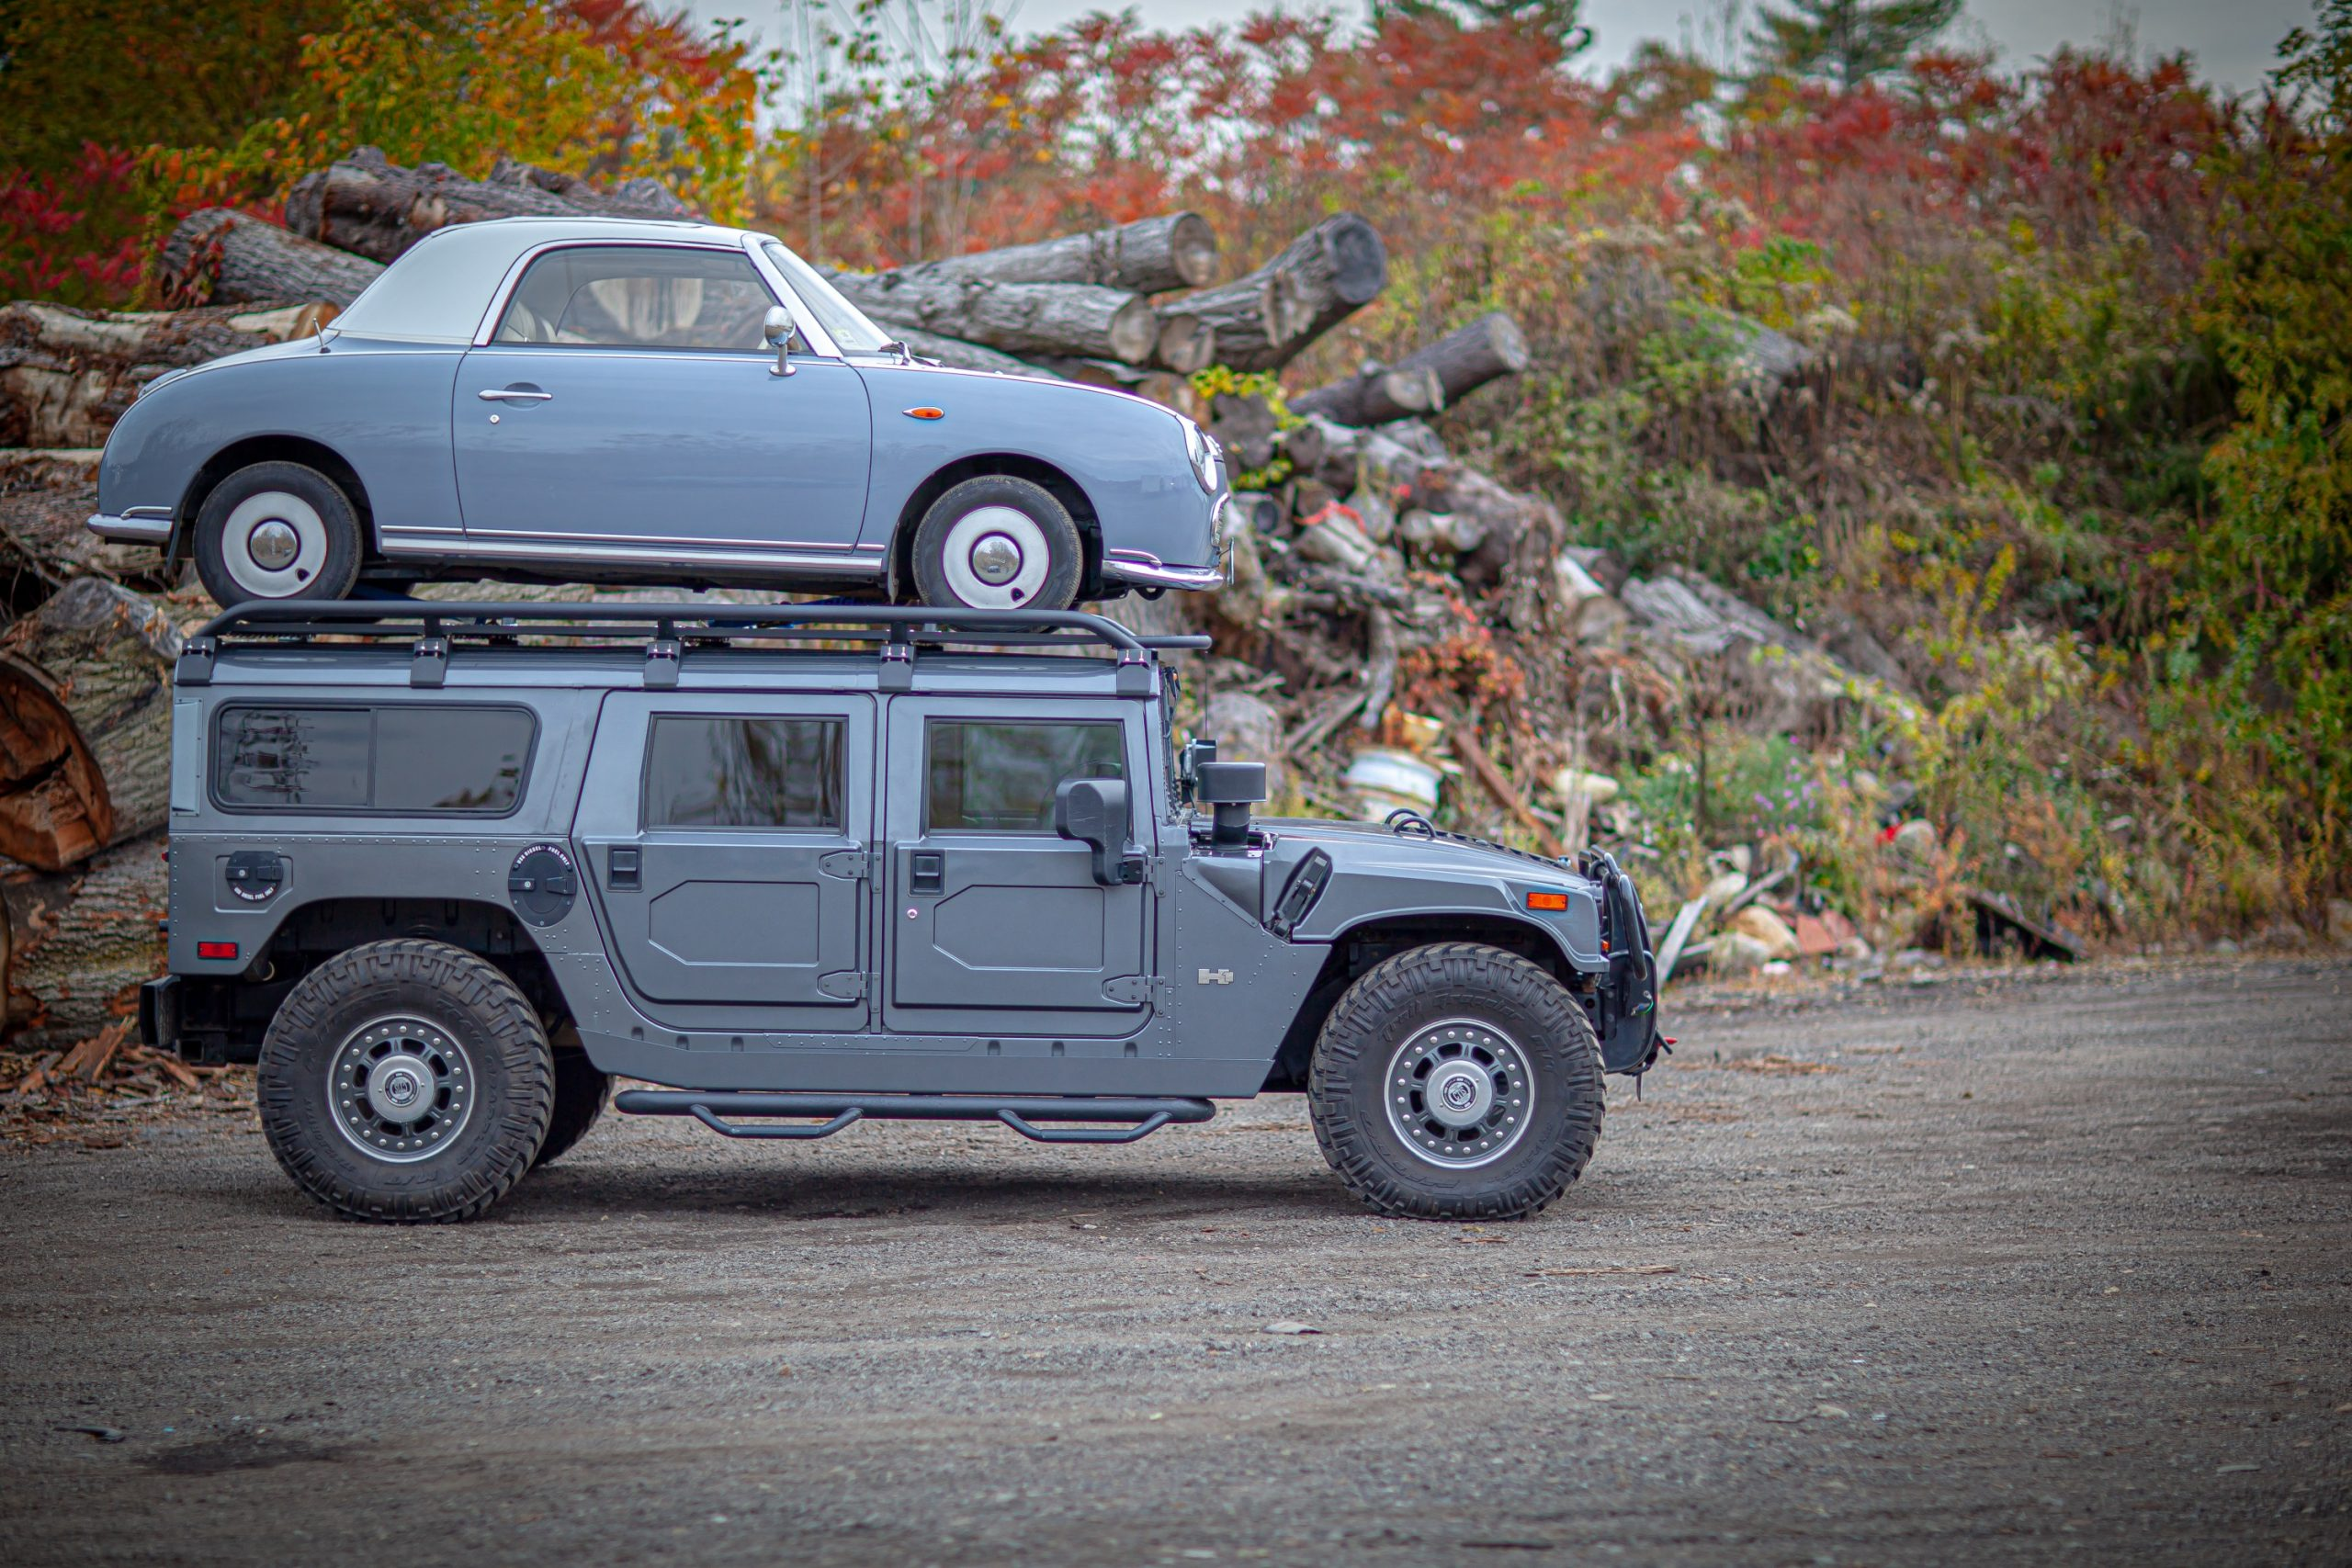 hummer predator rack nissan figaro on top side